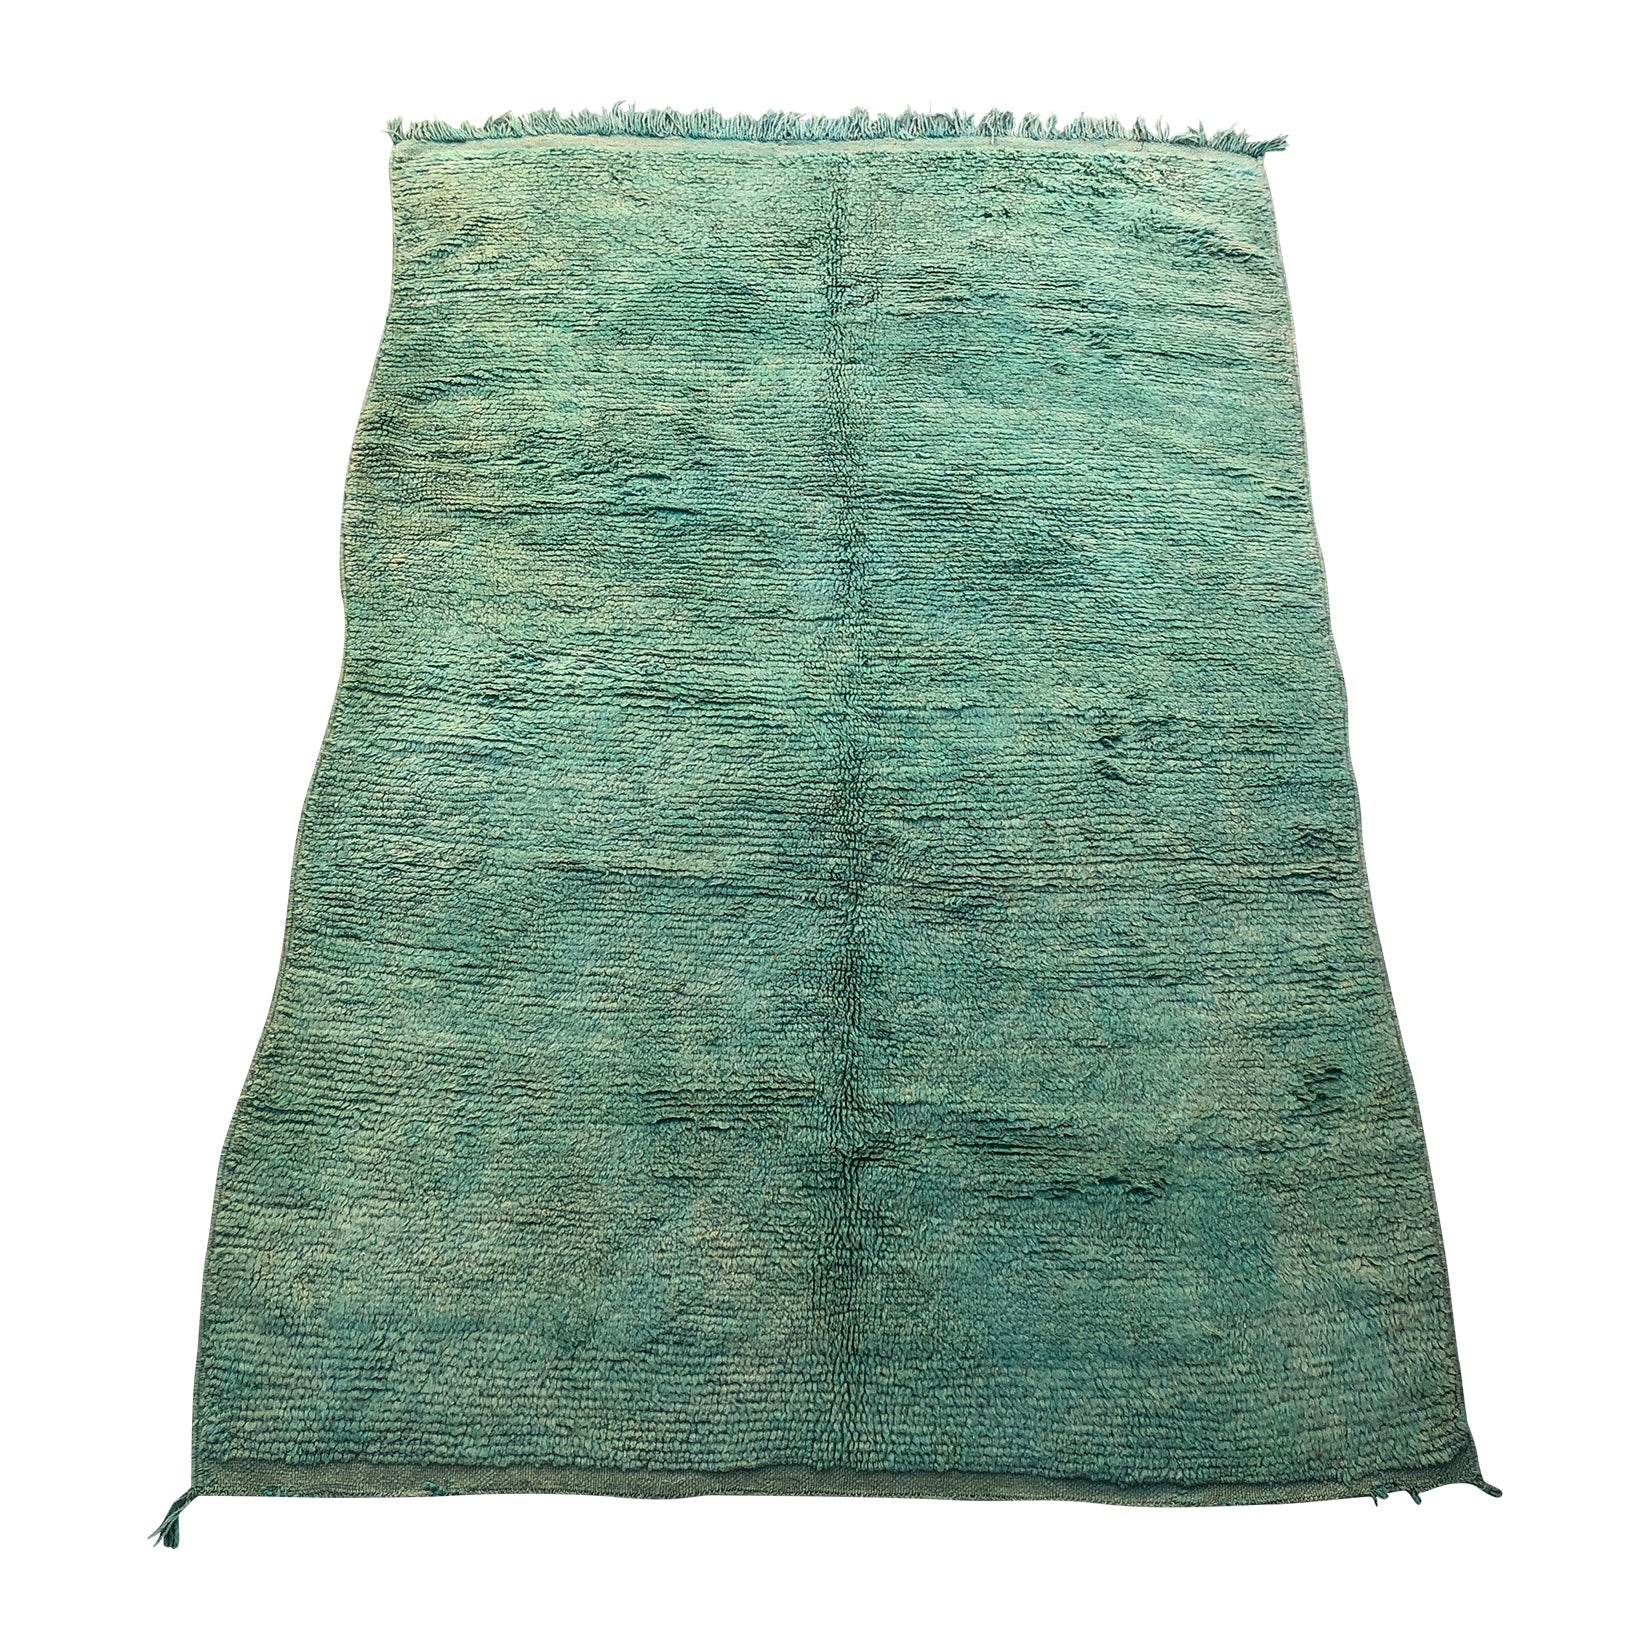 NISHANE - Moroccan area rug in shades of green - Kantara | Moroccan Rugs